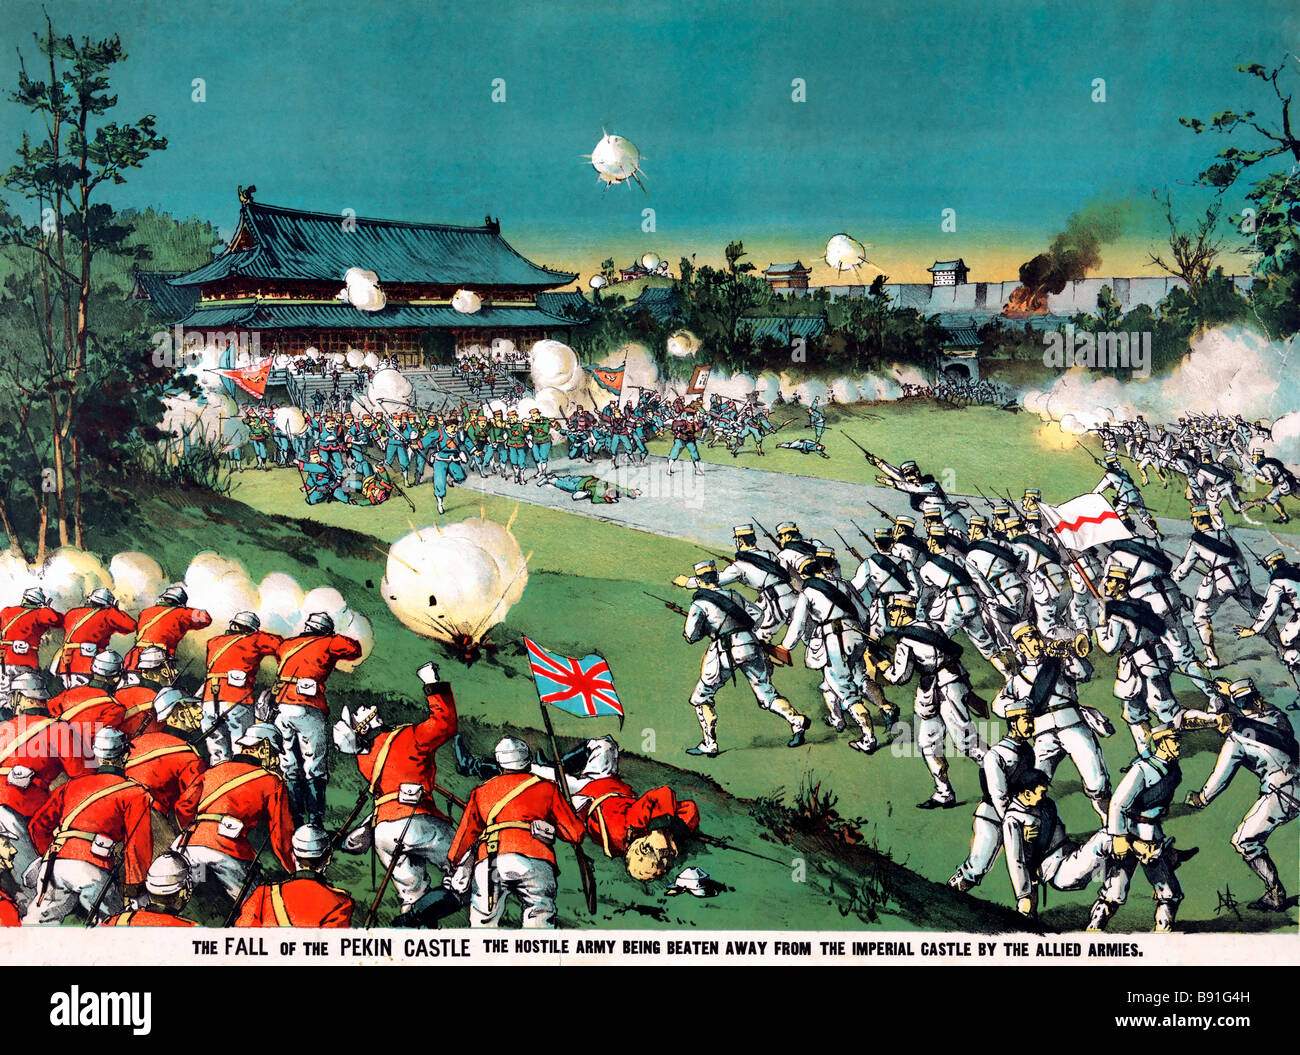 The fall of the Peking castle, the hostile army being beaten away from the imperial castle by the allied armies - Stock Image